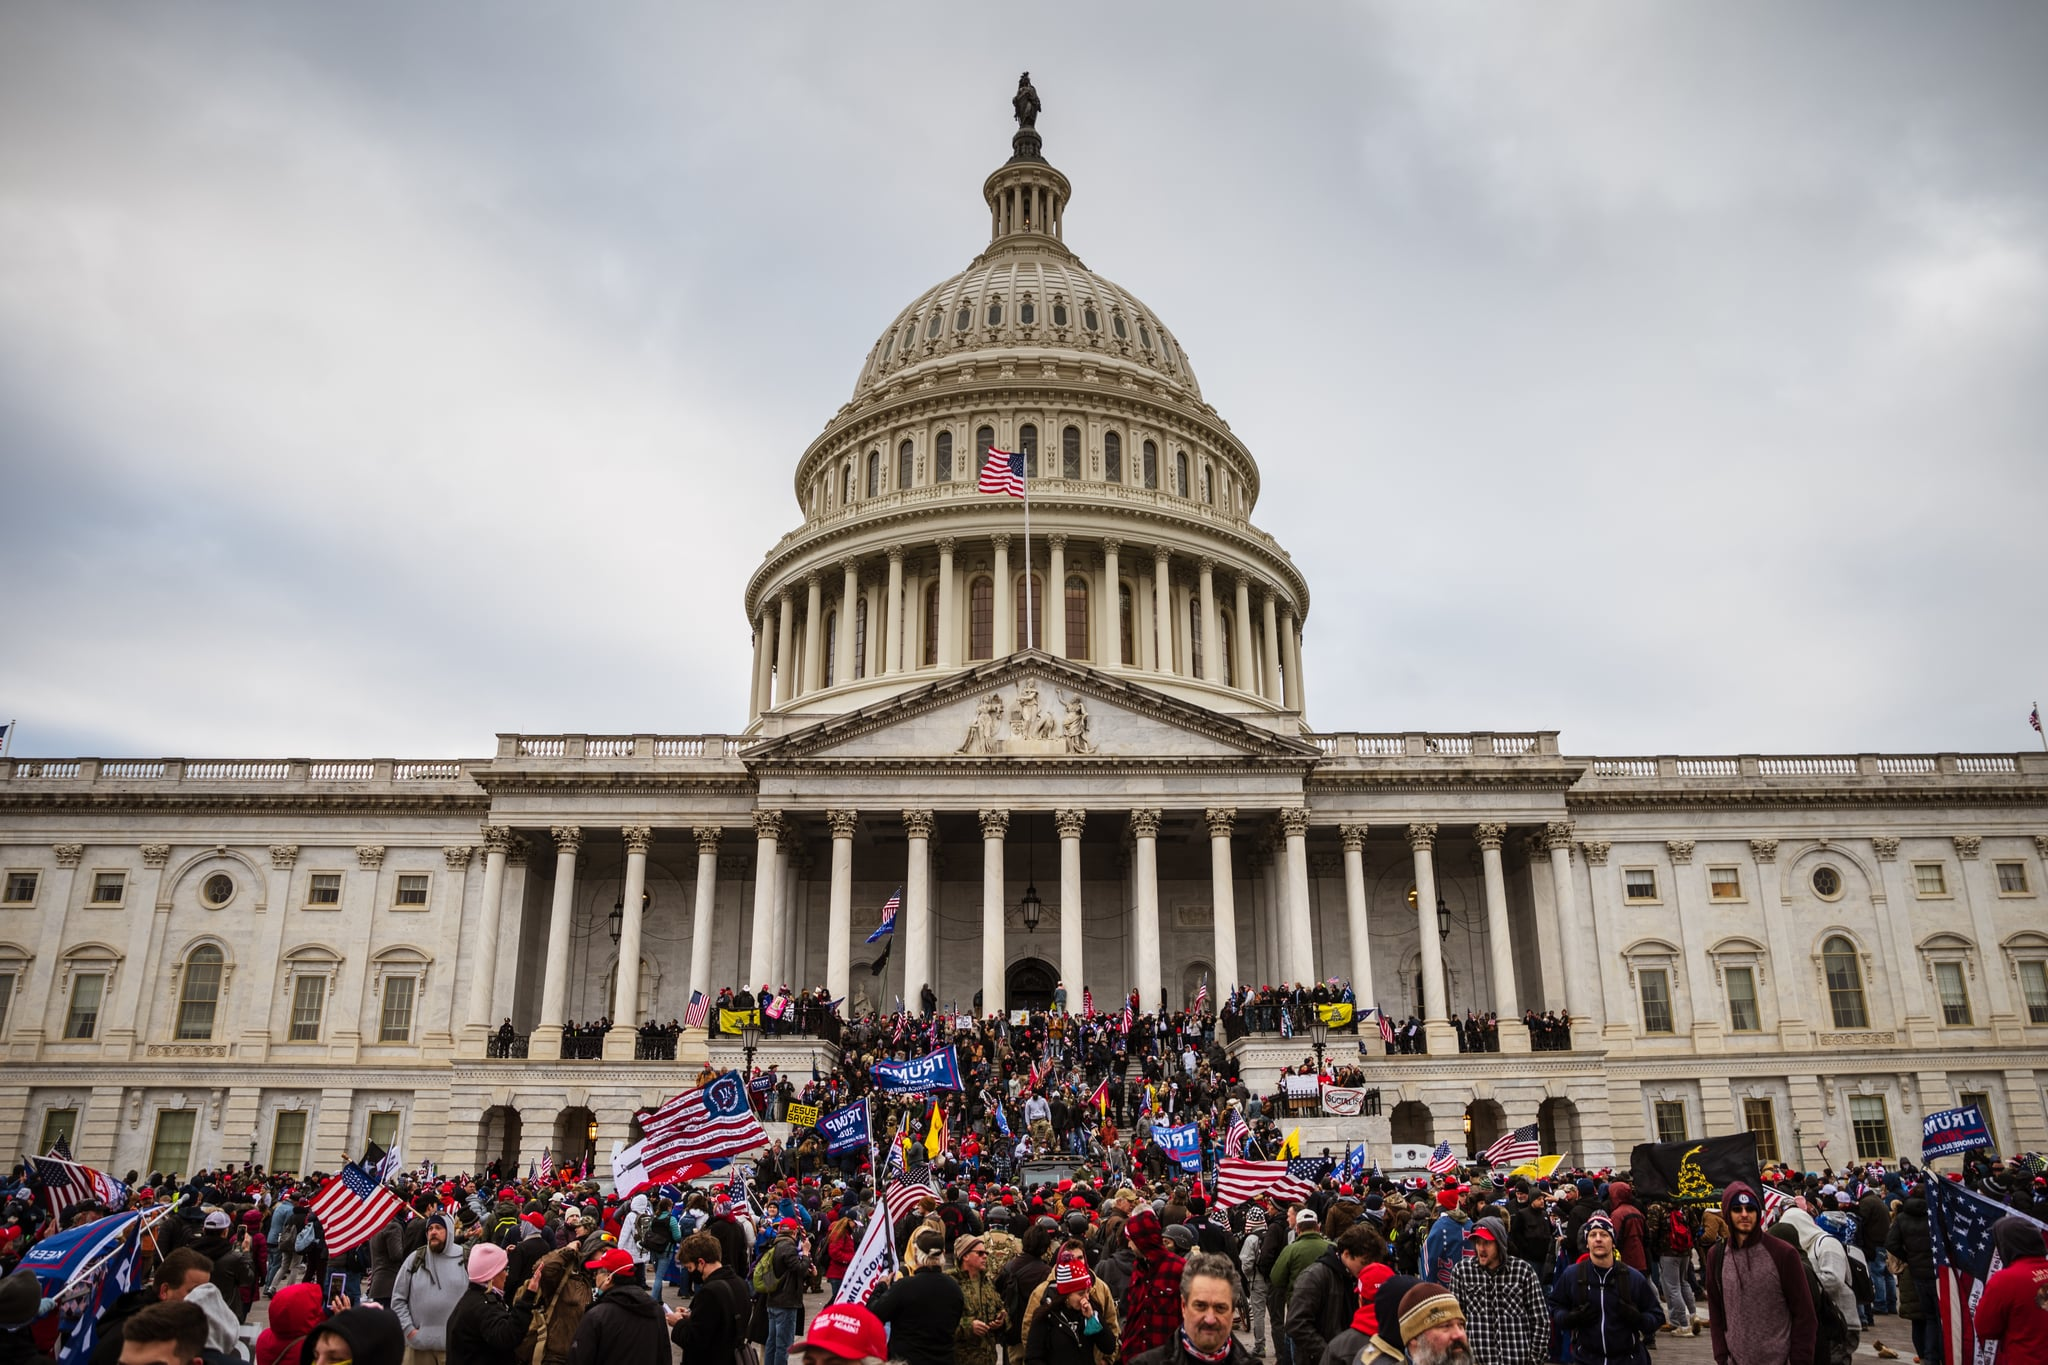 WASHINGTON, DC - JANUARY 06: A large group of pro-Trump protesters stand on the East steps of the Capitol Building after storming its grounds on January 6, 2021 in Washington, DC. A pro-Trump mob stormed the Capitol, breaking windows and clashing with police officers. Trump supporters gathered in the nation's capital today to protest the ratification of President-elect Joe Biden's Electoral College victory over President Trump in the 2020 election. (Photo by Jon Cherry/Getty Images)